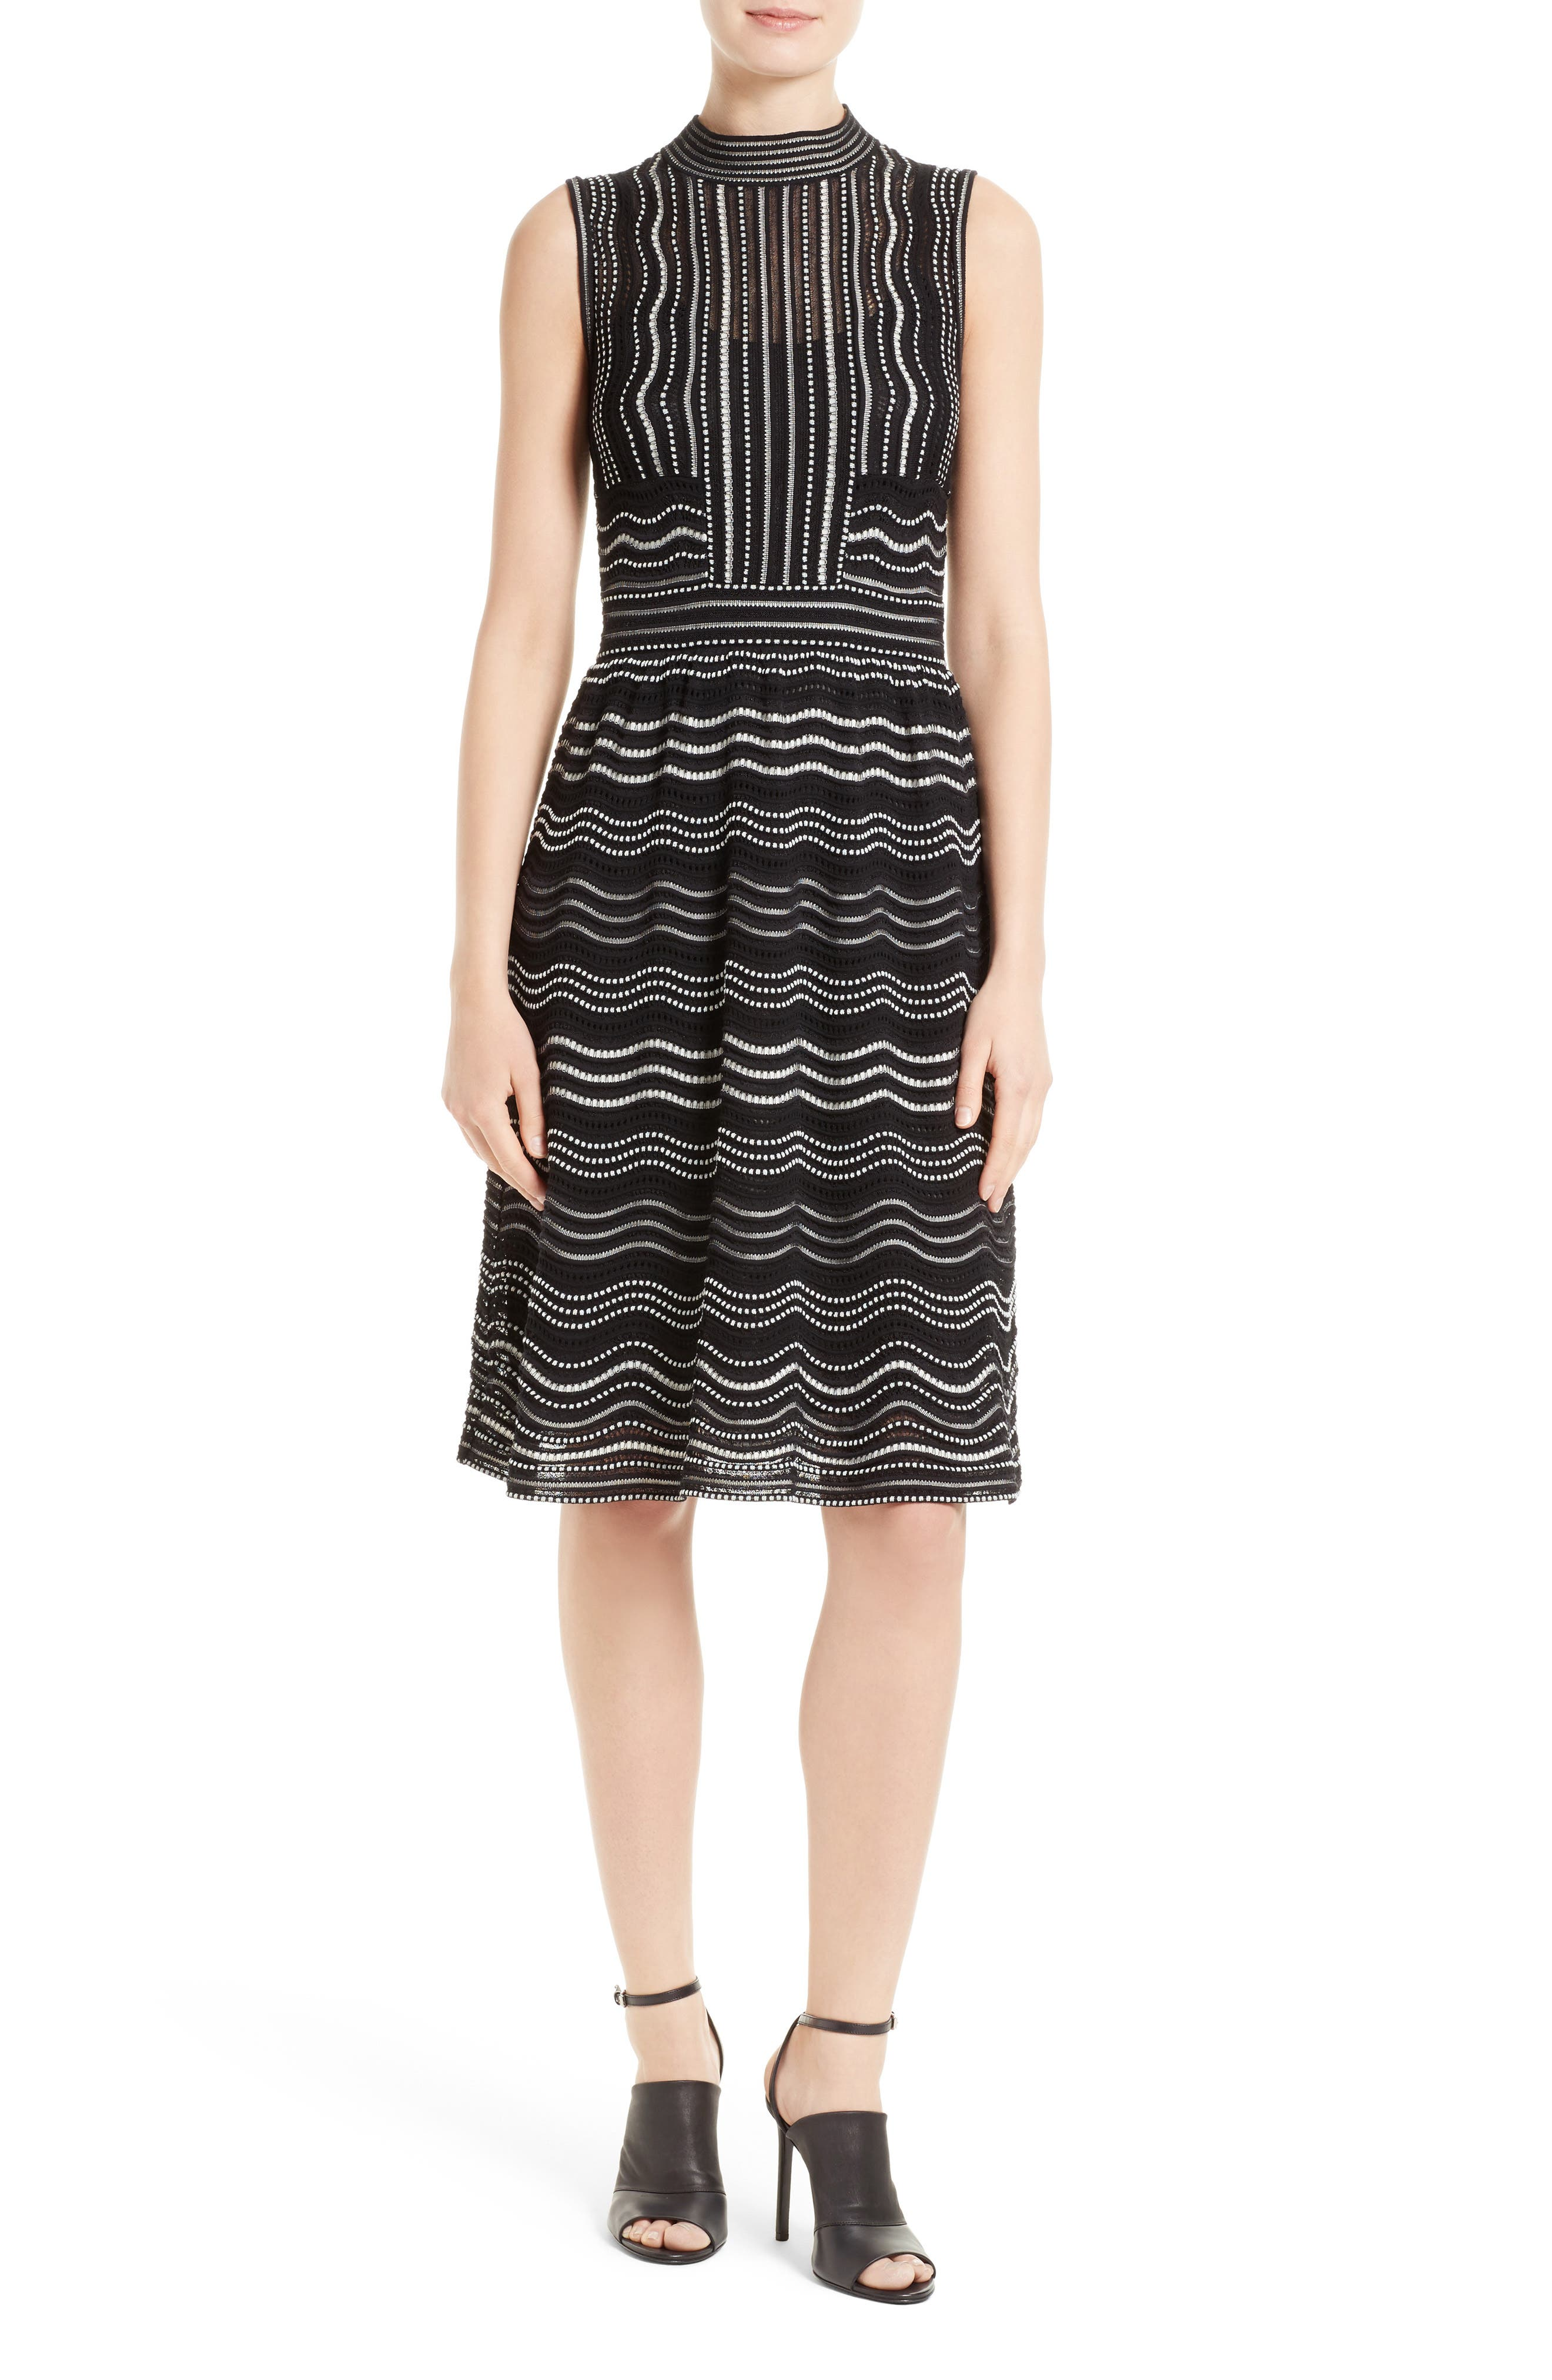 M Missoni Ripple Dot Fit & Flare Dress